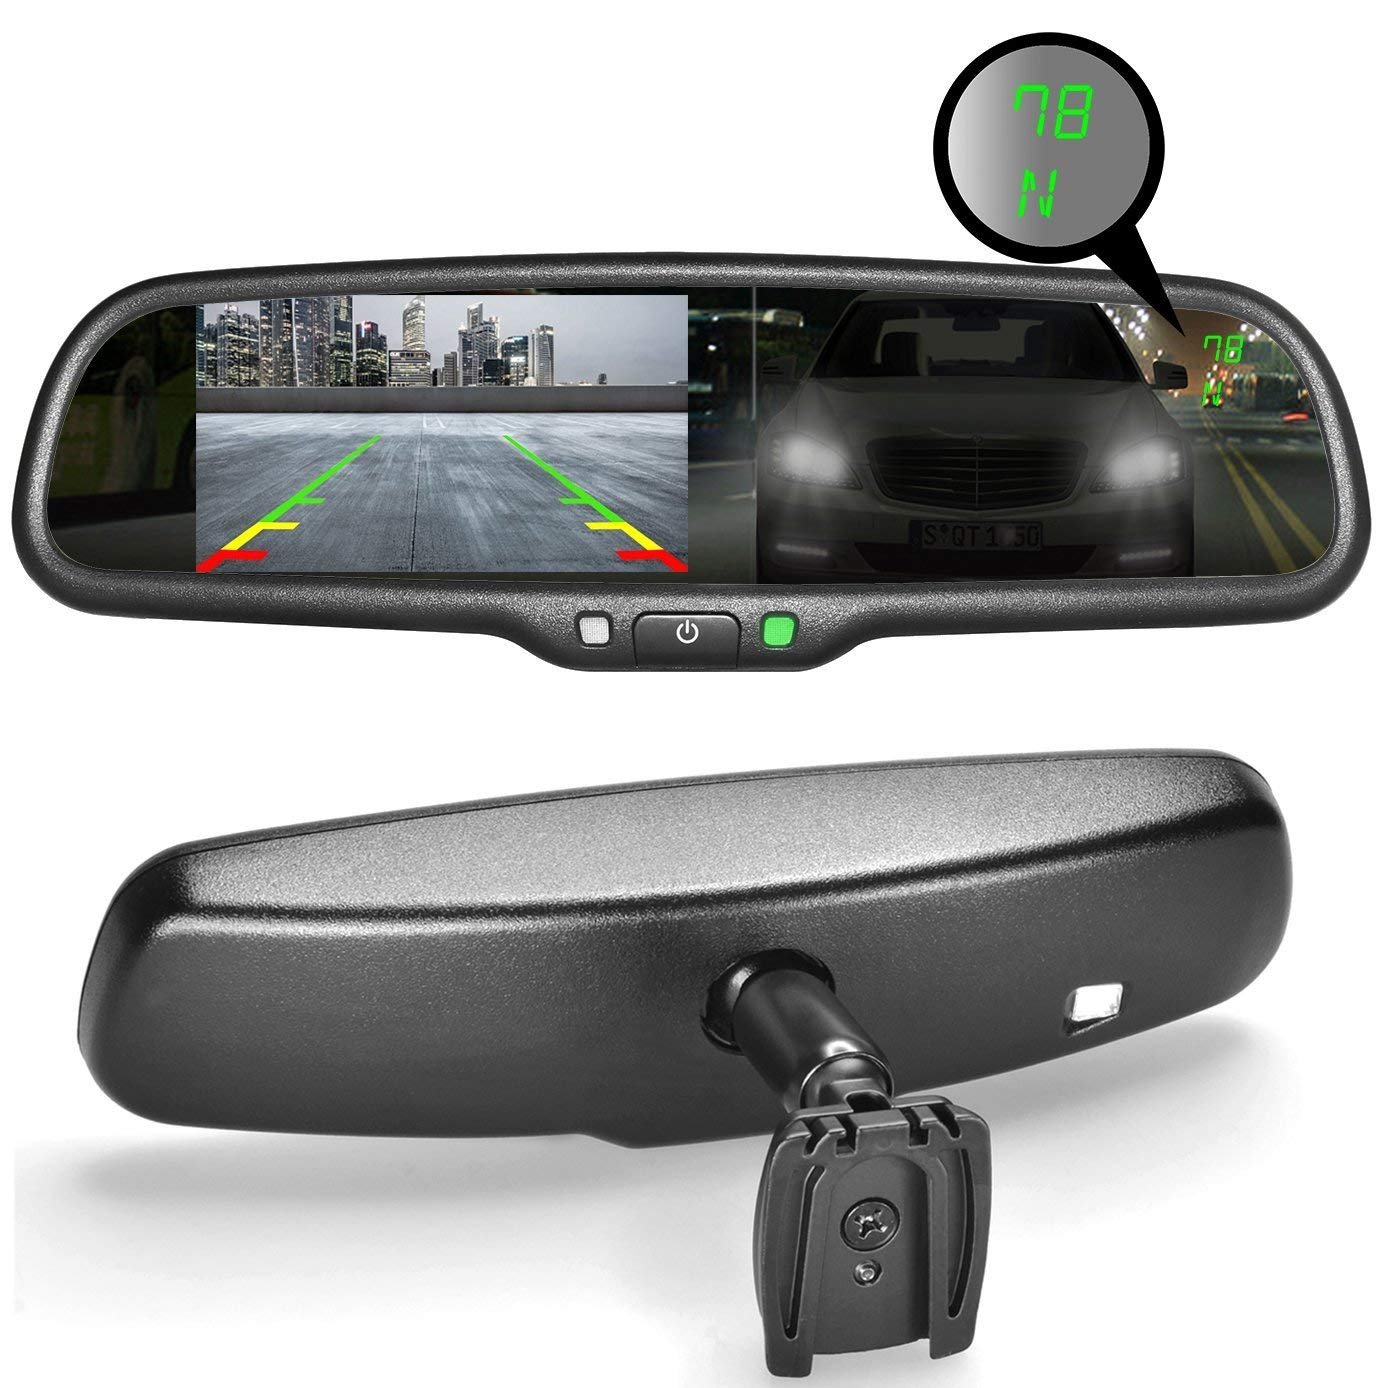 Master Tailgaters MR-43-A2DTC OEM Rear View Mirror with Ultra Bright 4.3' Auto Adjusting Brightness LCD Plus Auto Dimming Mirror Plus Compass MDDNR